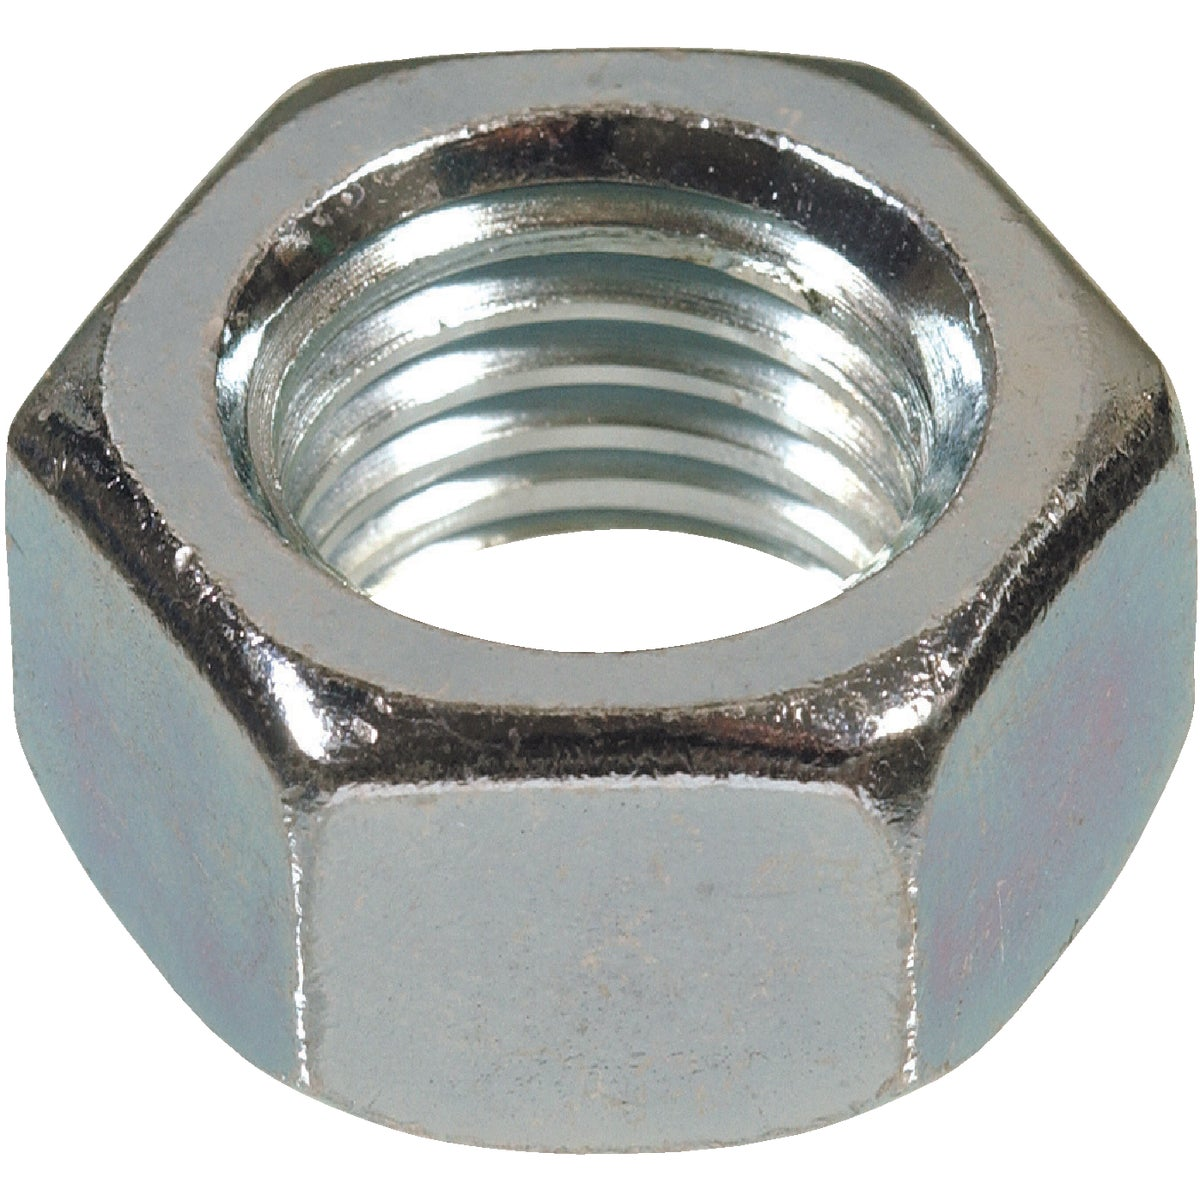 1/2-13 C THREAD HEX NUT - 150015 by Hillman Fastener